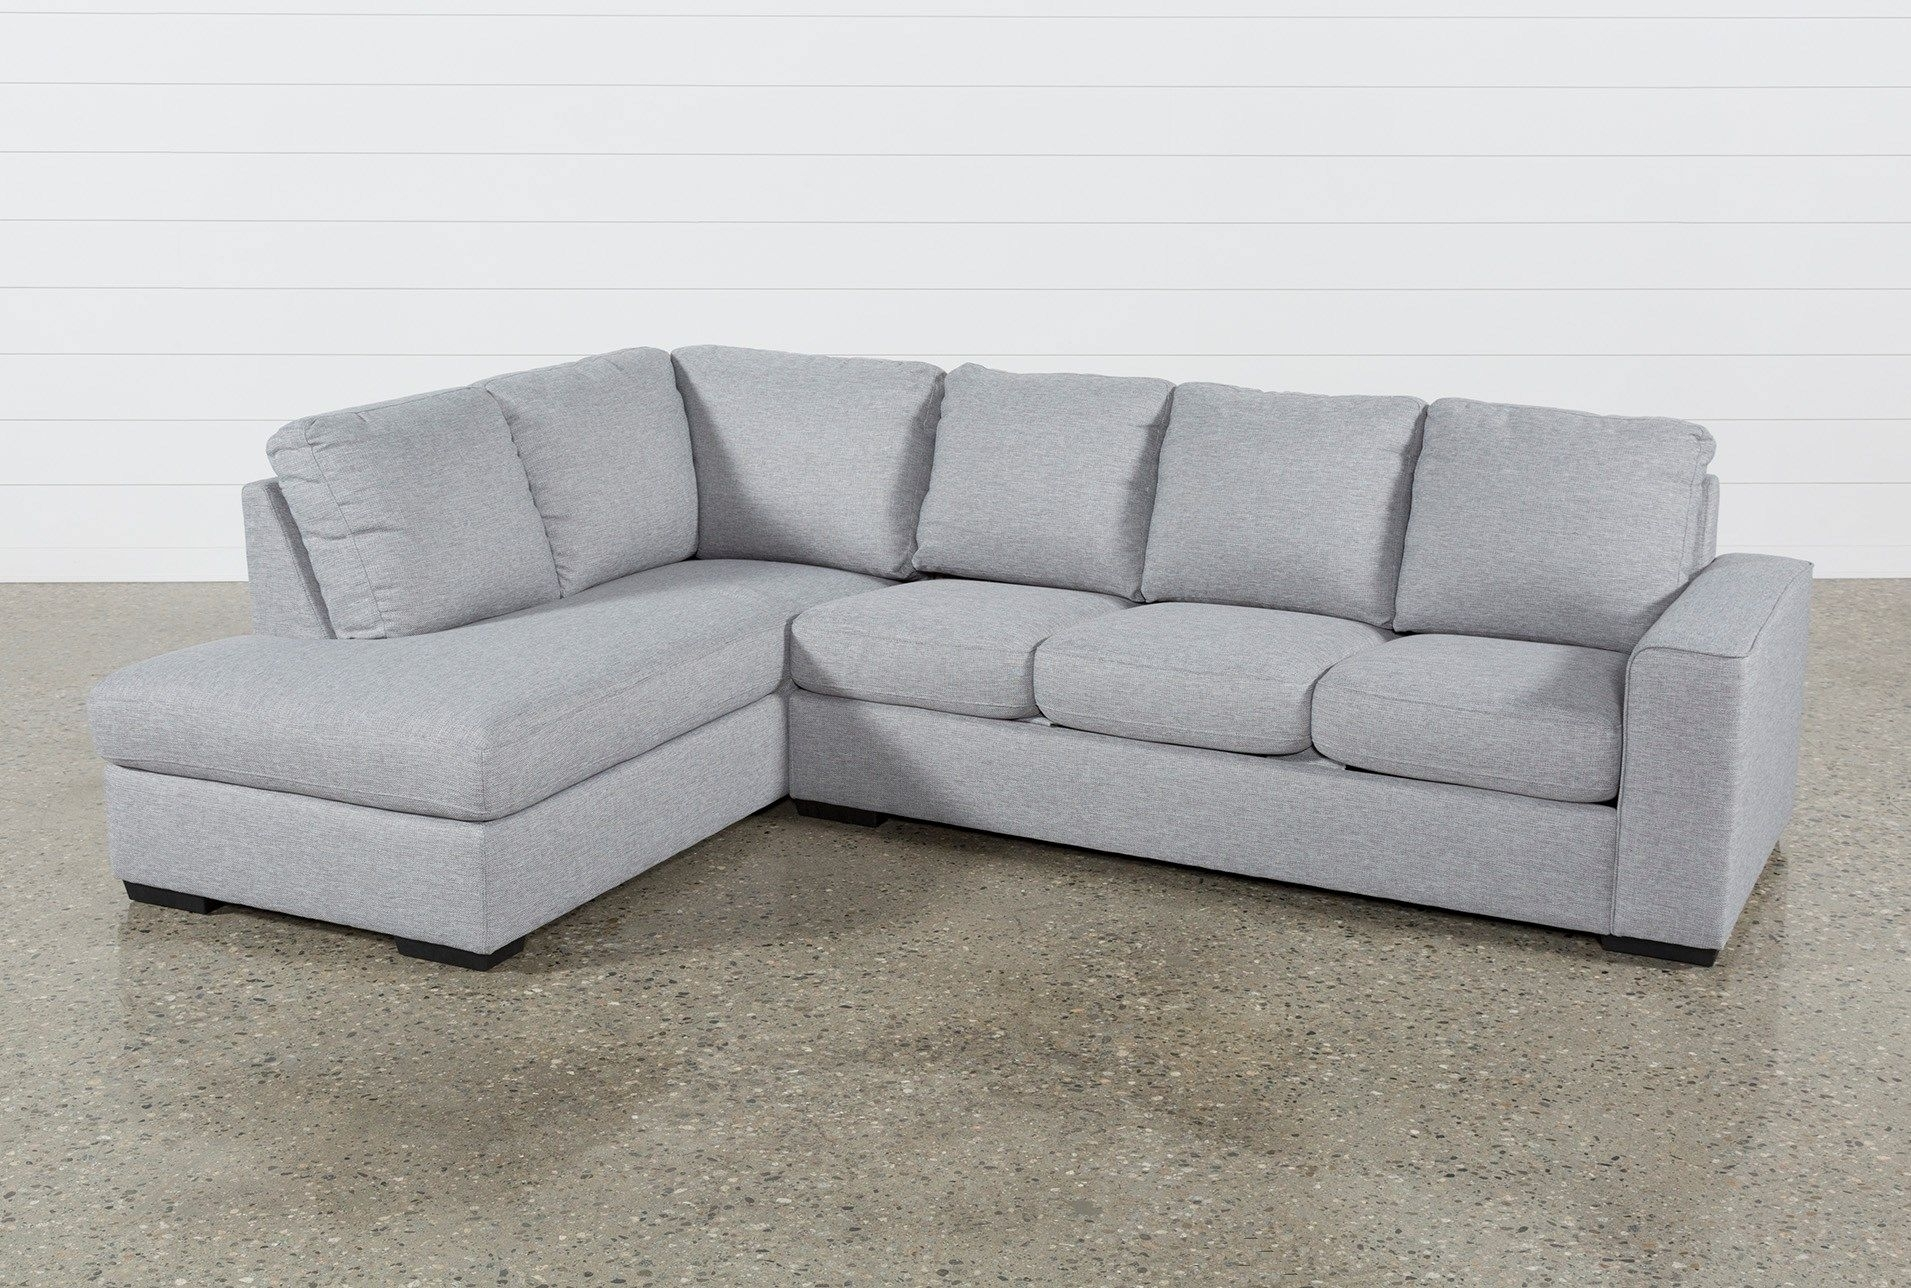 Lucy Grey 2 Piece Sectional W/laf Chaise | Tx House | Pinterest Inside Lucy Dark Grey 2 Piece Sleeper Sectionals With Raf Chaise (View 5 of 25)